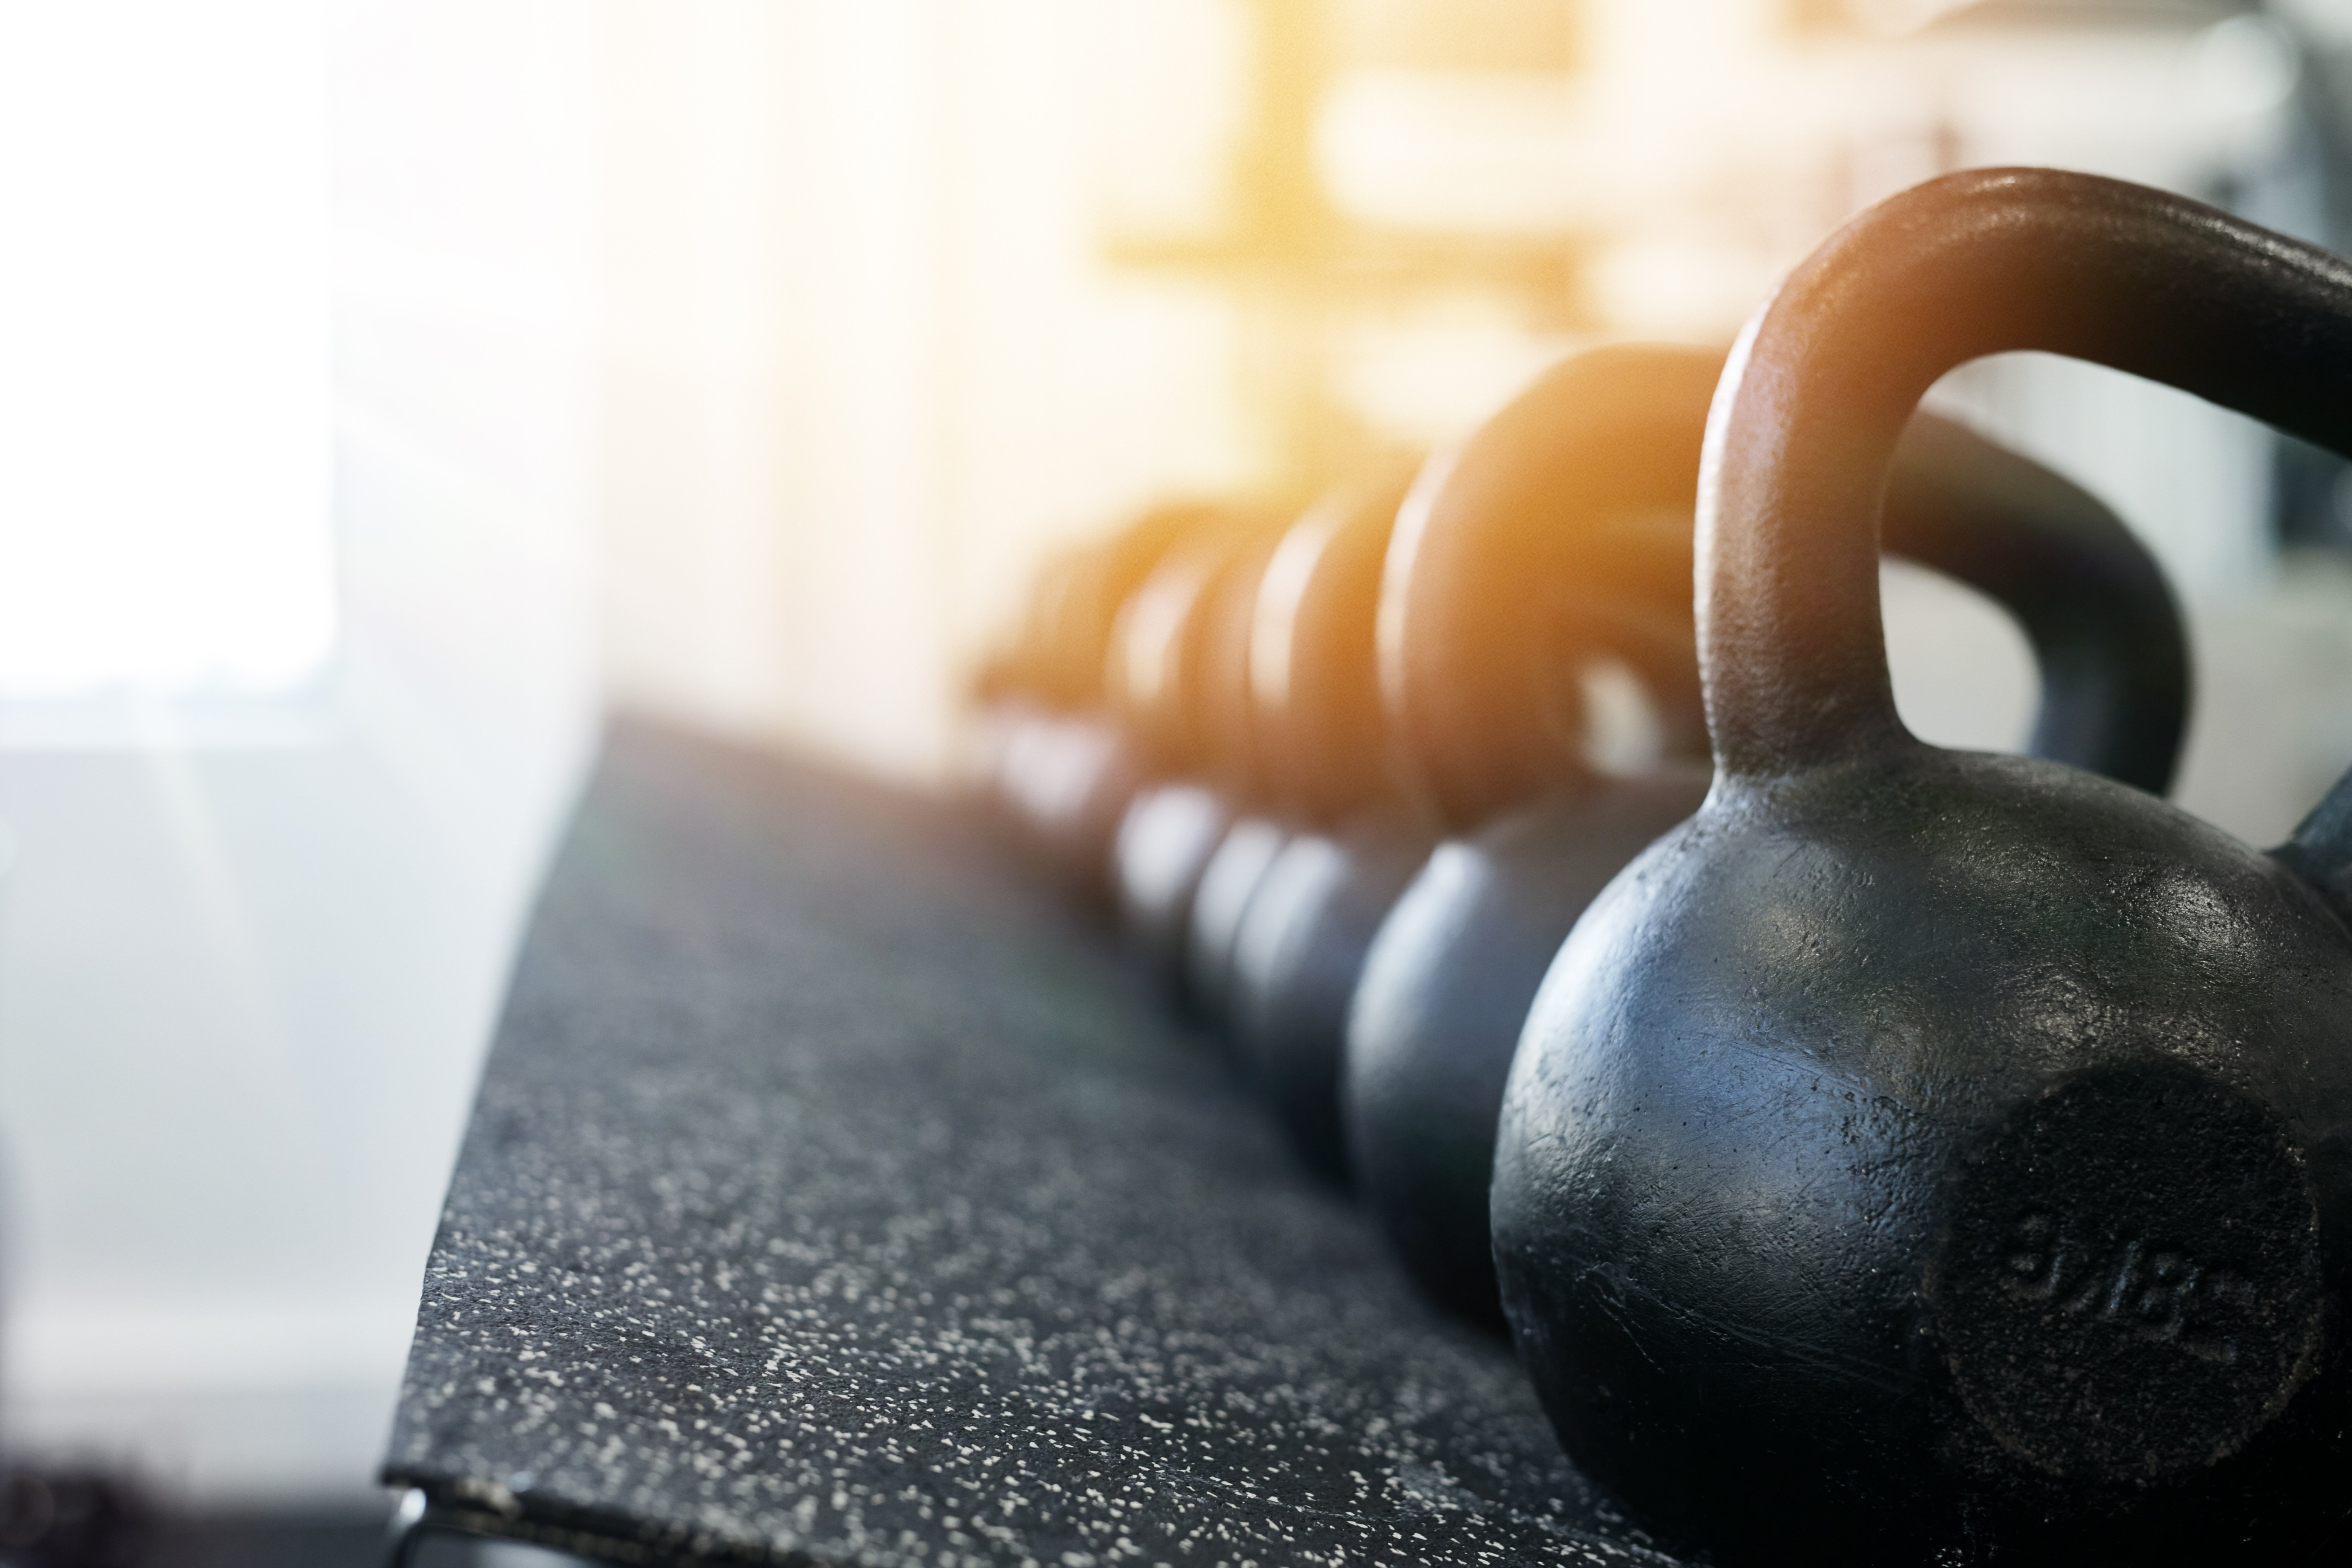 Kettlebells for personal training